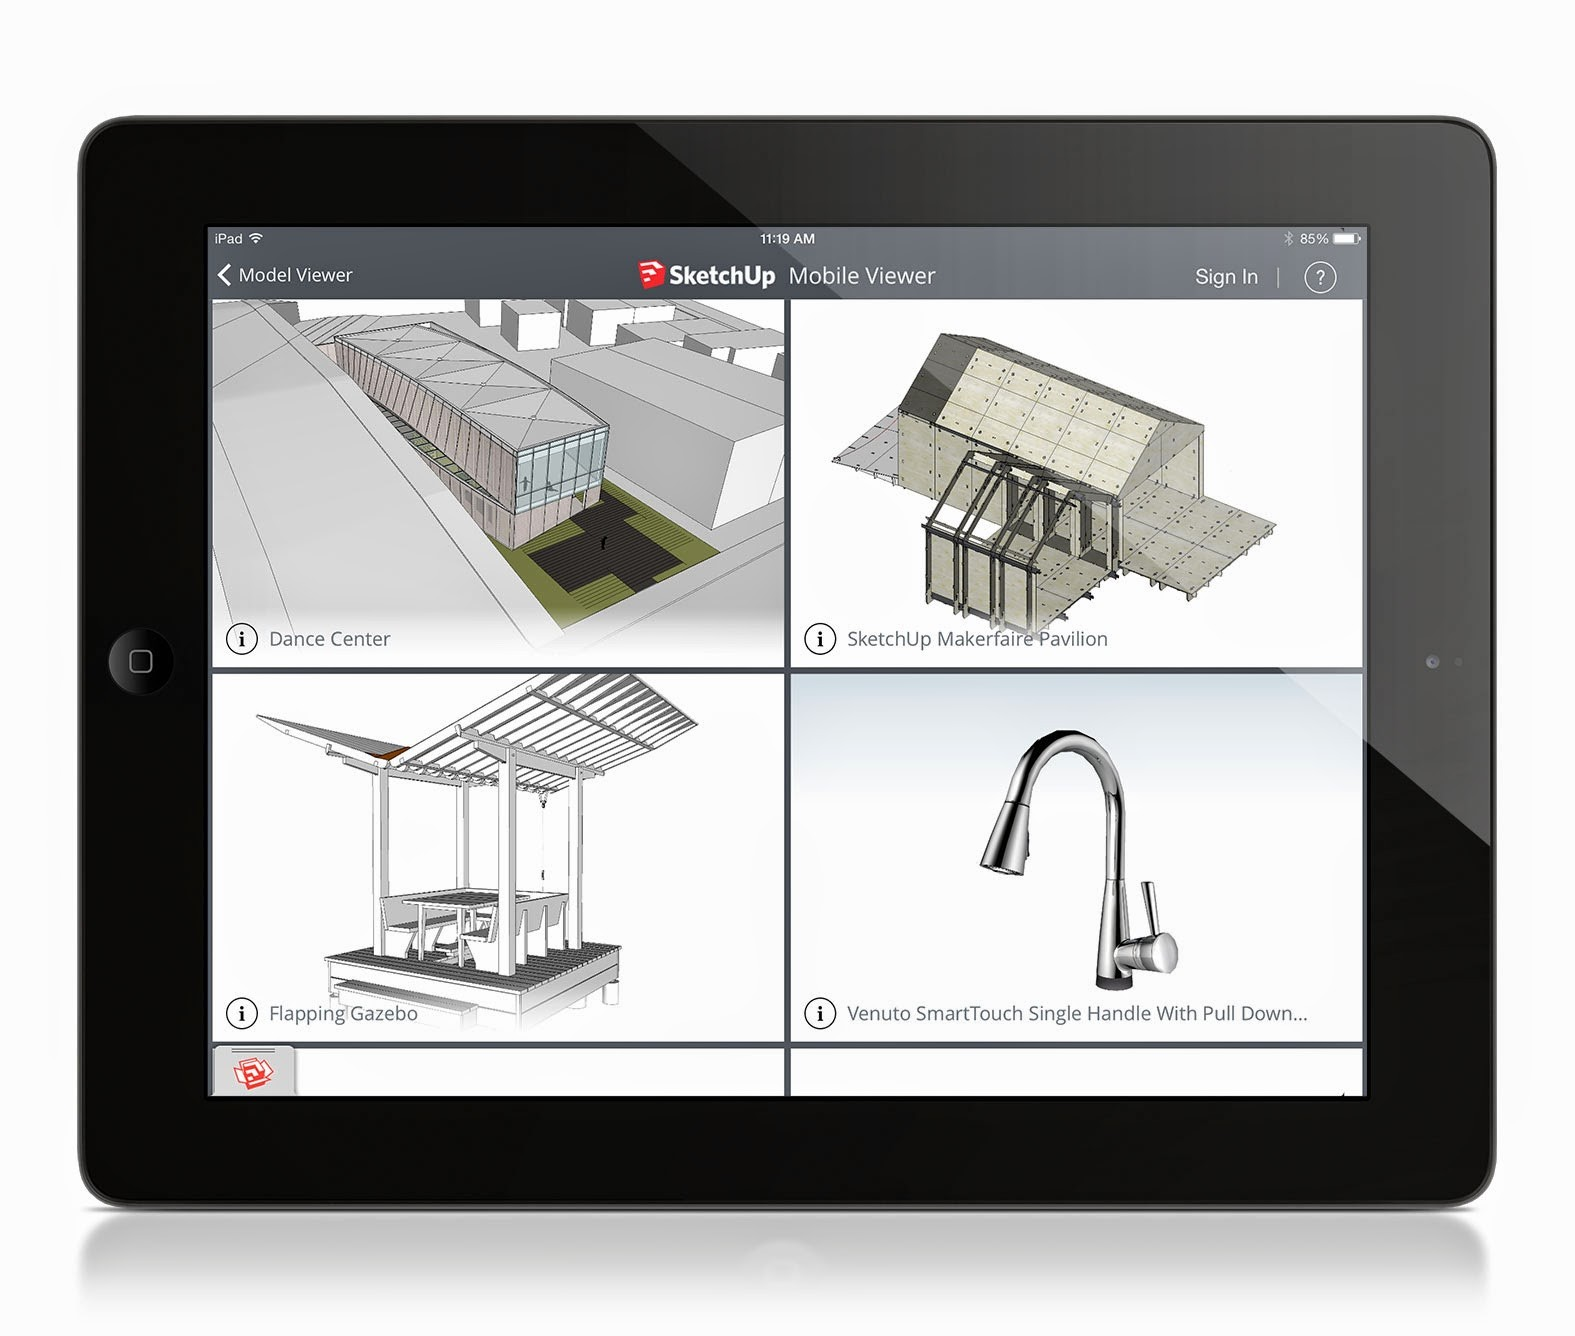 SketchUp Announces Mobile Viewer for iPad, Courtesy of SketchUp